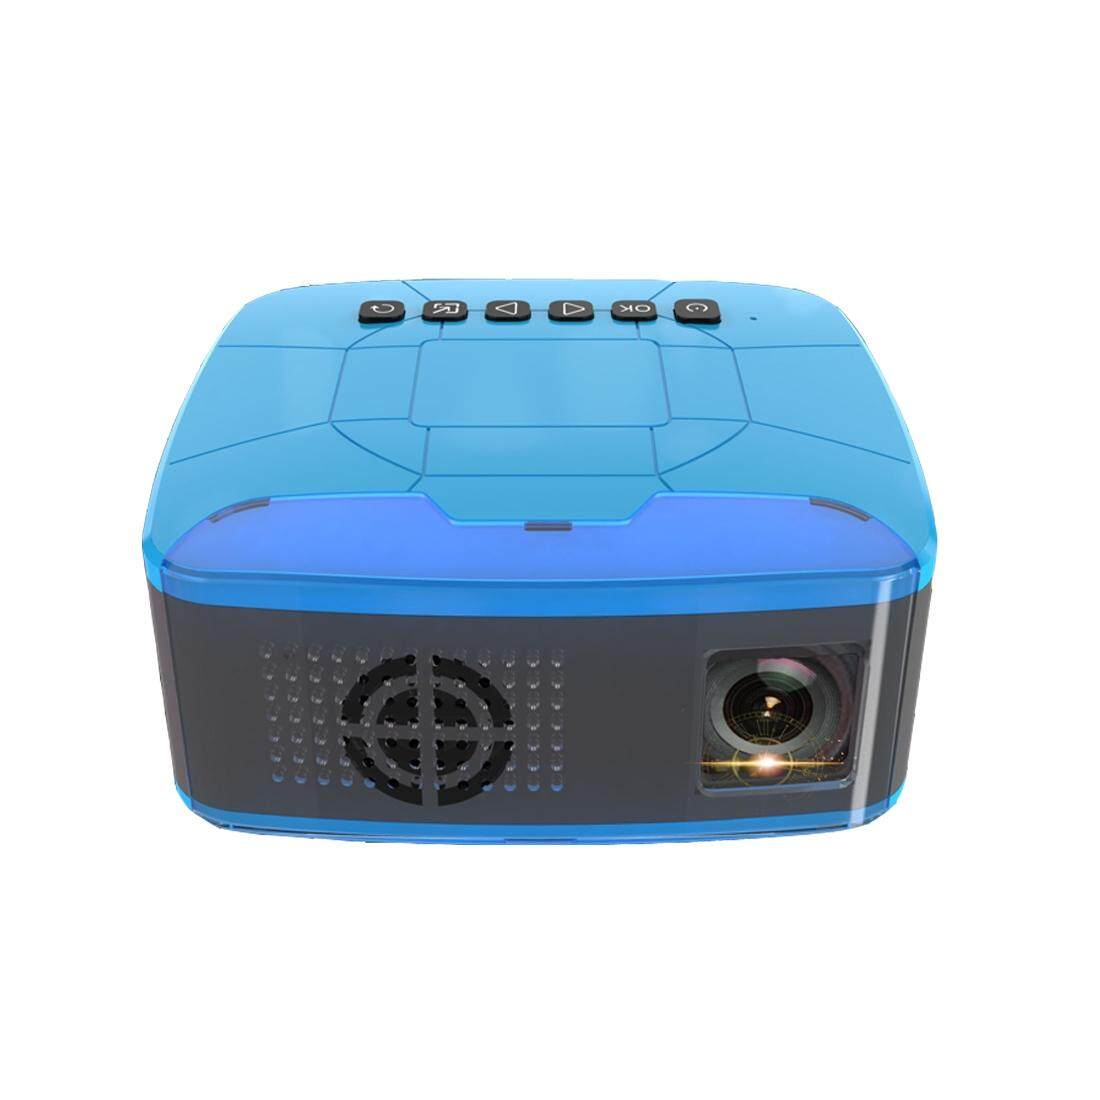 U20 500ANSI Lumens 1080P LCD Technology Mini Portable HD Theater Projector, Support TF, HDMI, AV, USB(Blue)